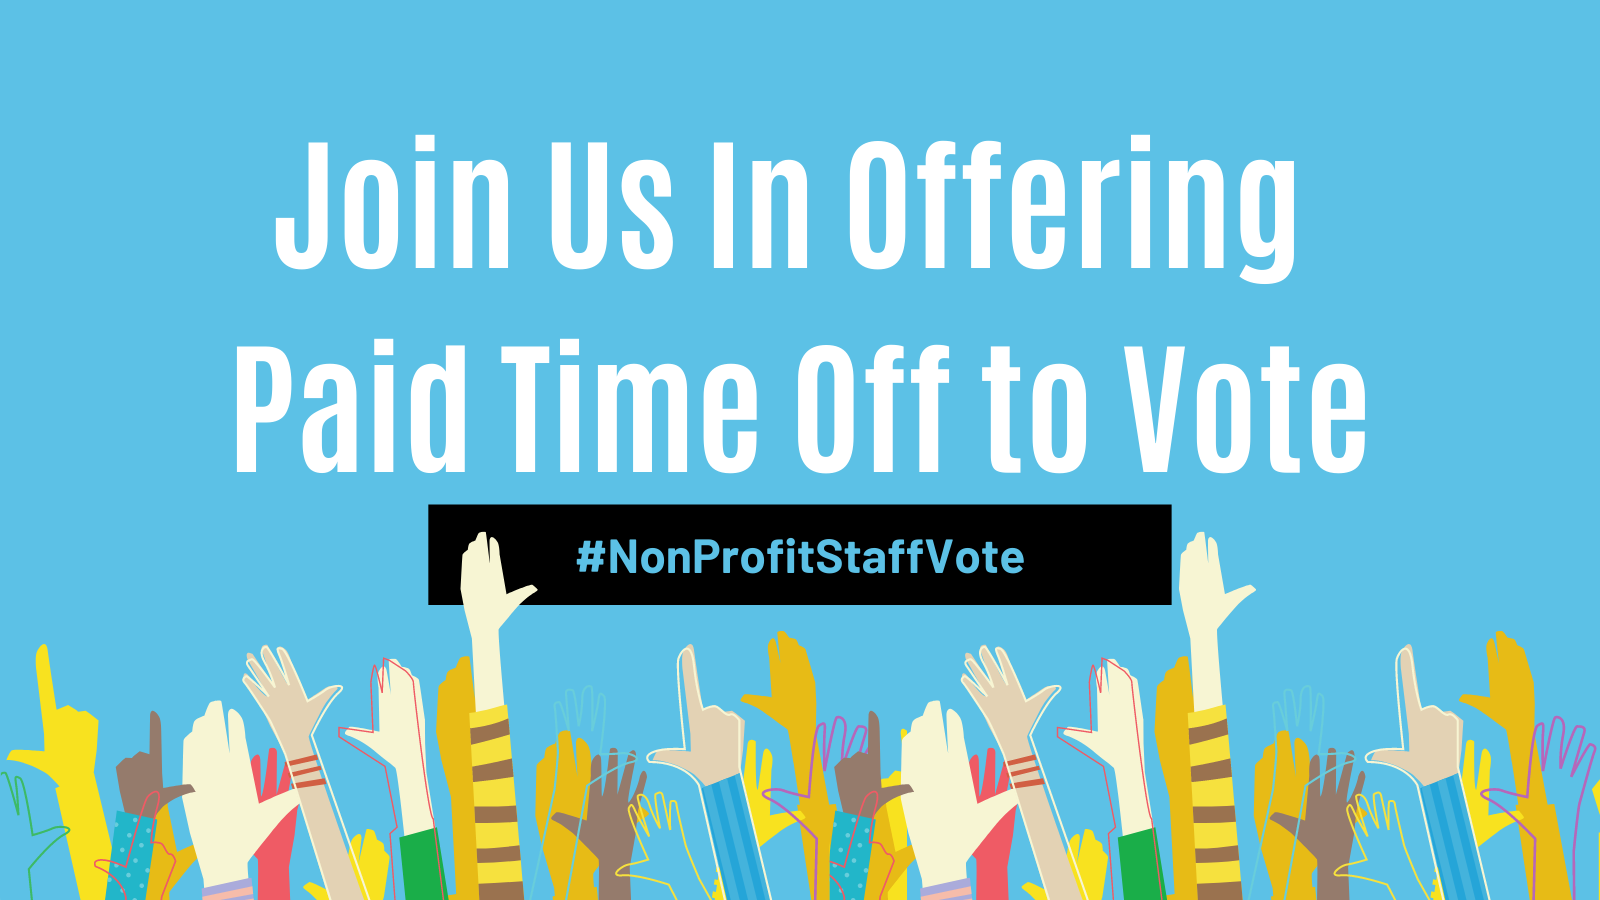 Join Us In Offering Paid Time Off To Vote #NonProfitStaffVote